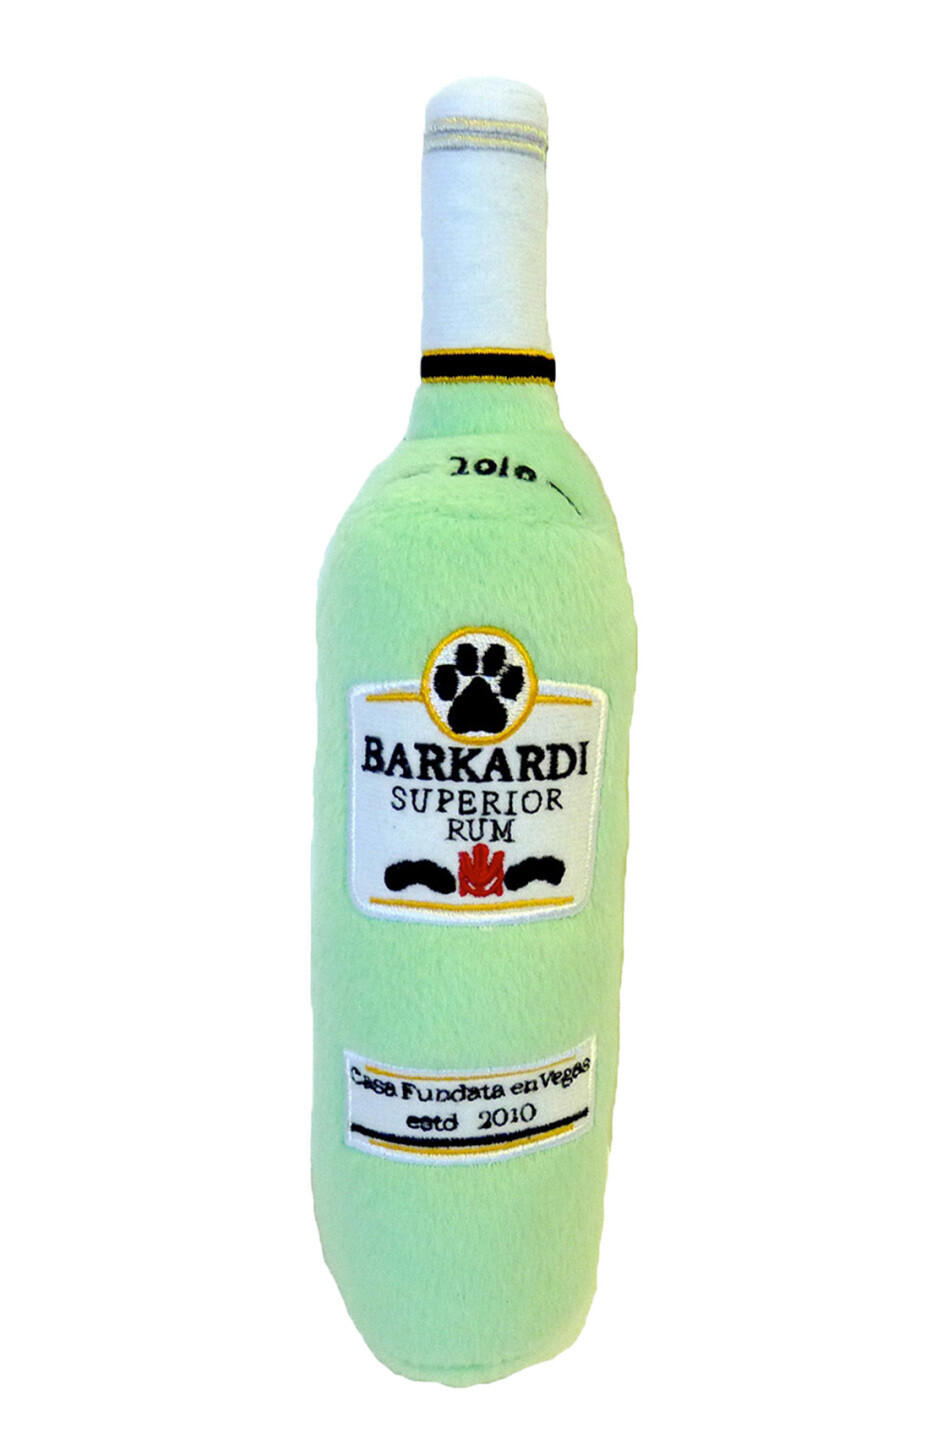 Barkardi Rum Bottle